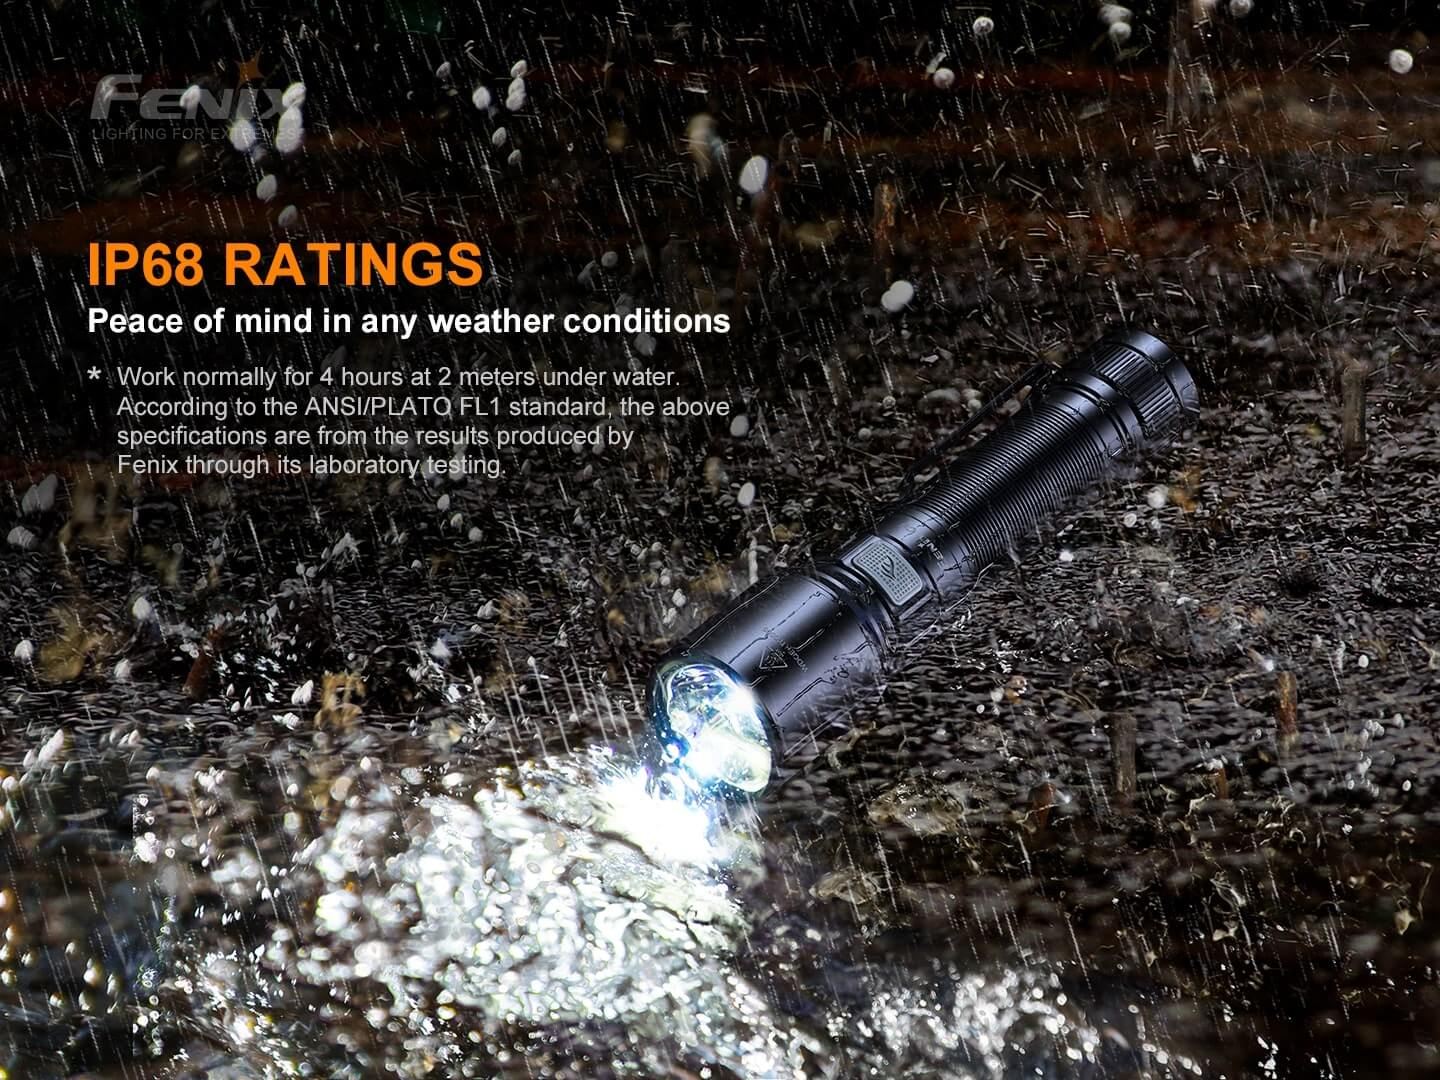 Fenix C6 V3 LED Rechargeable Torch Light,1500 Lumens Compact USB C-type Rechargeable Torch in India, Best for Outdoors Work Industrials Torches